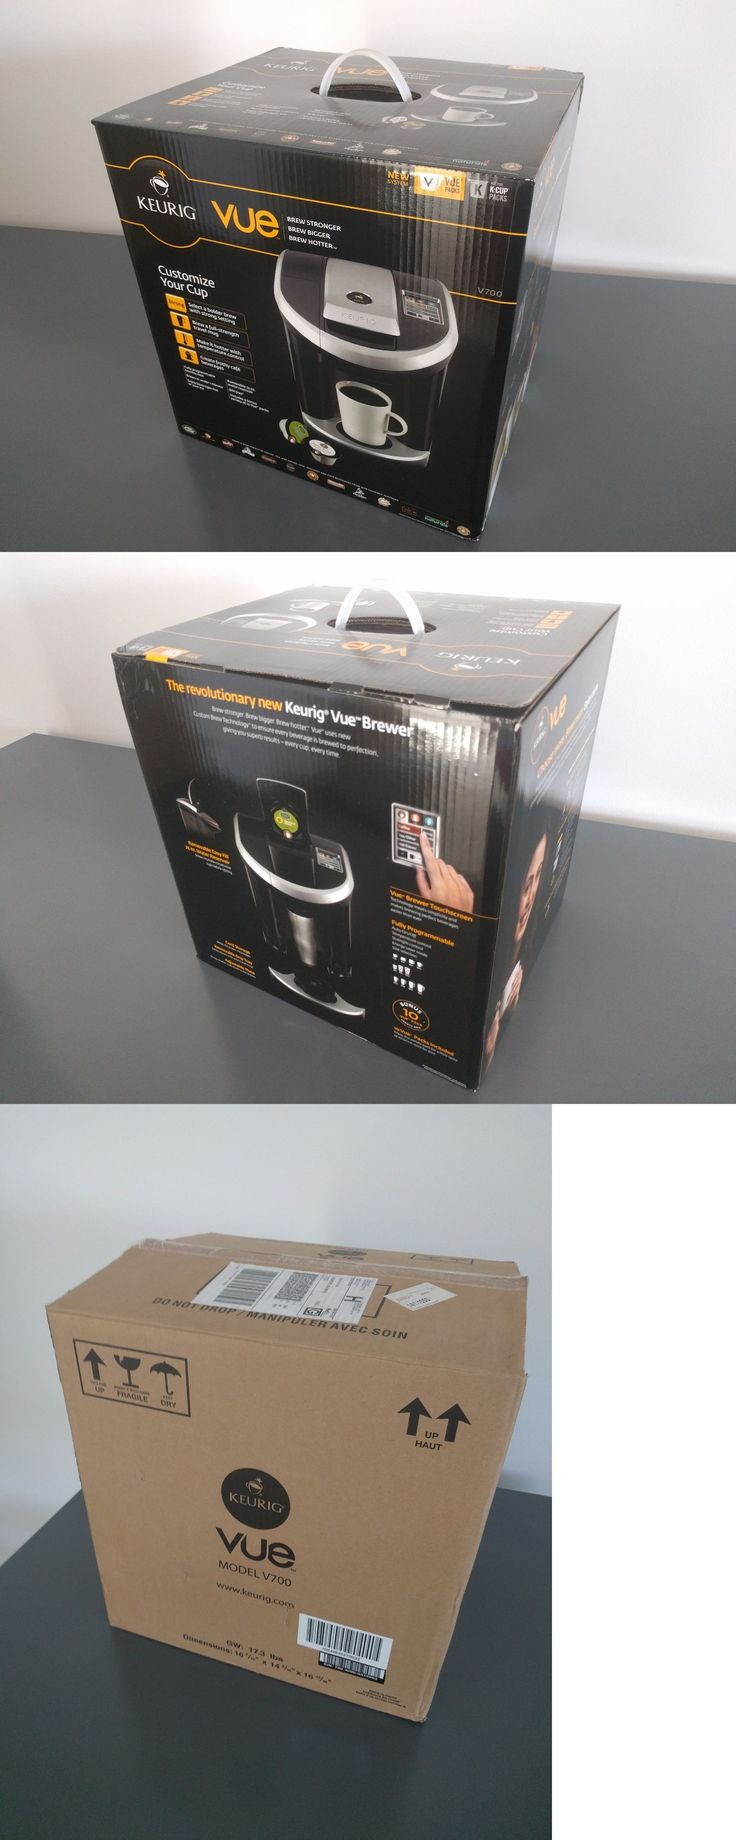 Single Serve Brewers 156775: Brand New Keurig Vue V700 Single Cup Coffee Maker Machine Brewer - Msrp $199 -> BUY IT NOW ONLY: $129 on eBay!